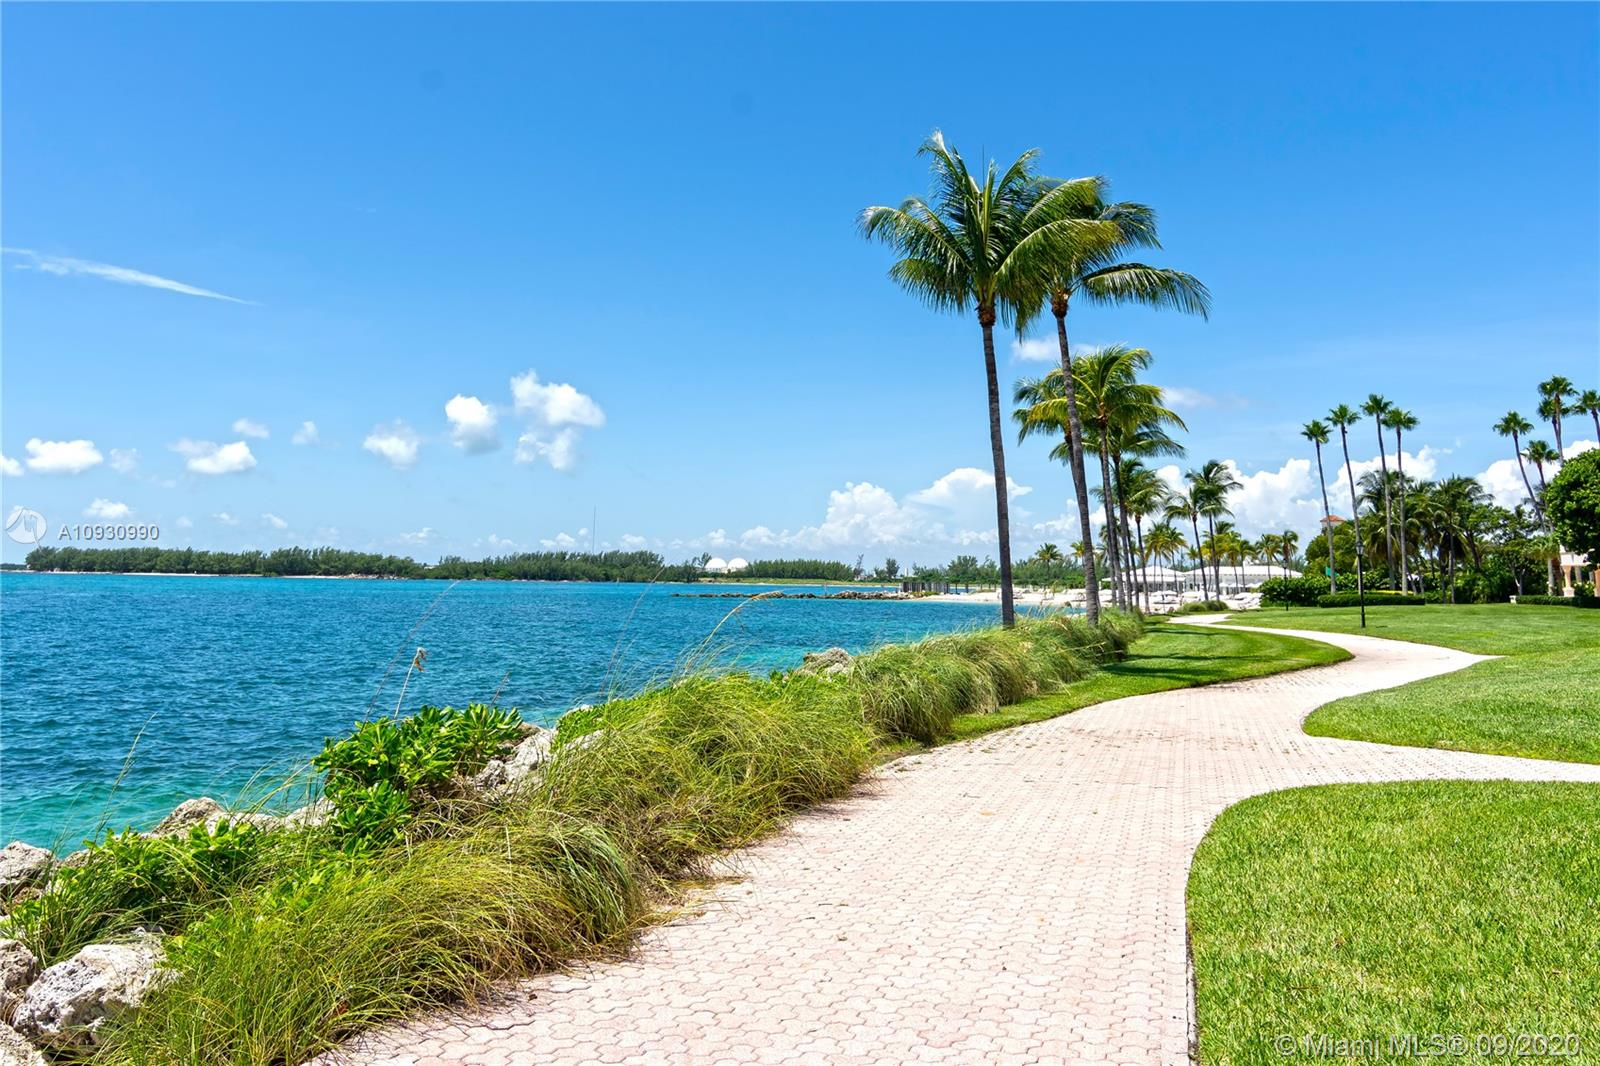 Welcome to exclusive Fisher Island's paradise, the most luxurious, desirable and wealthiest zip code in America with amenities galore!!!! Wow...what an amazing opportunity to own this fabulous, bright and sunny 3bed/3bath residence - 2049 SQFT of living area + a super size beautiful wrap around open terrace offering breathtaking ocean and garden views, a fantastic floor plan, marble floors throughout, newer stainless steel kitchen appliances, unfurnished but furniture can be negotiable, etc. One of the best features is that Seaside is one of the few Condos in Fisher Island that allows short term rentals  therefore is it a great buy not only for end users but also for investors looking to own a vacation rental in the most prestigious address in South Florida! No equity membership required!